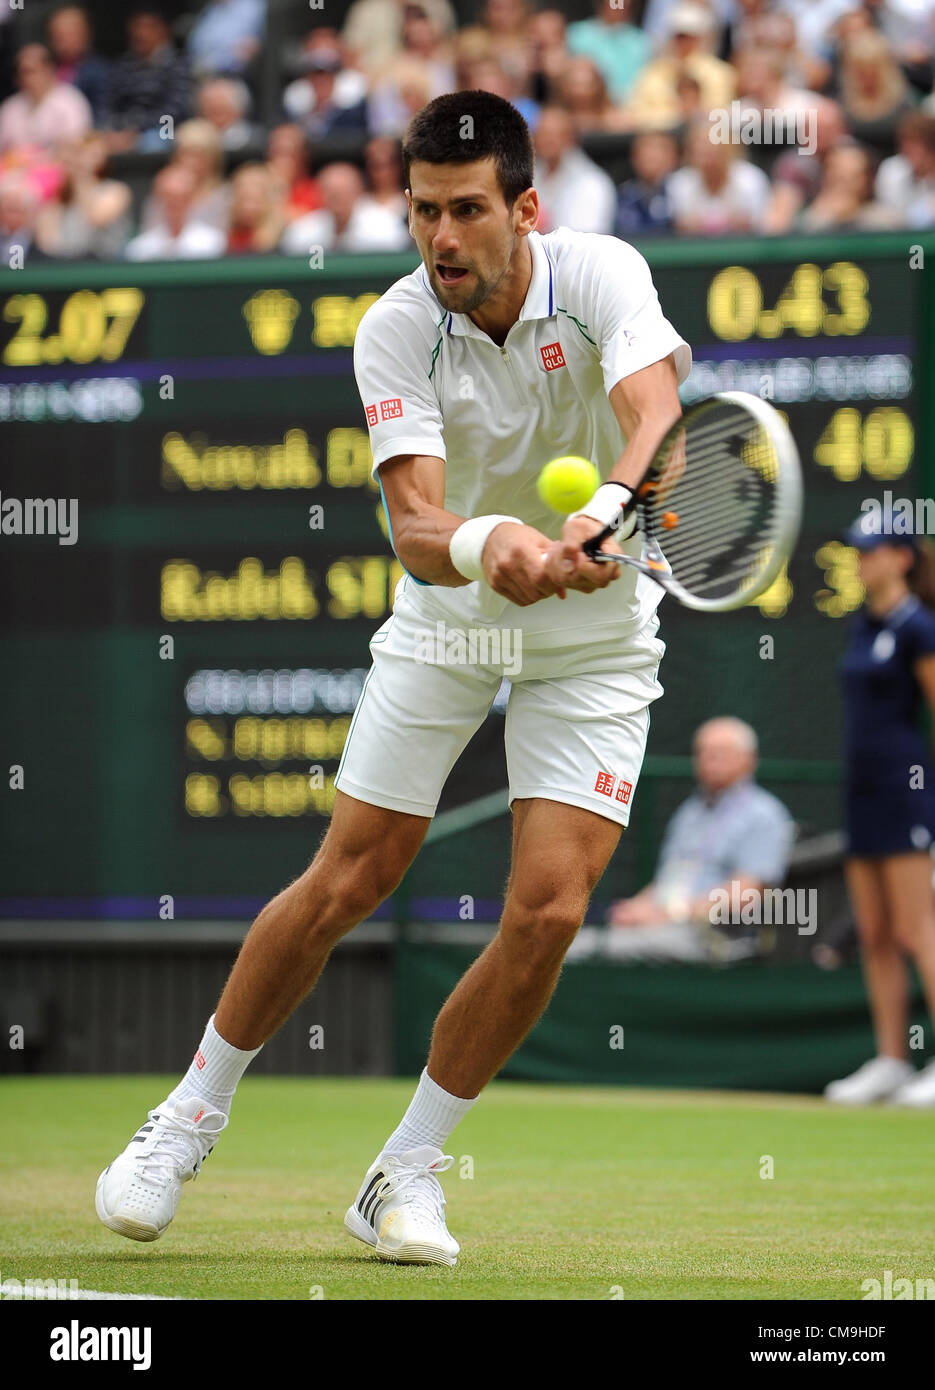 NOVAK DJOKOVIC SERBIA THE ALL ENGLAND TENNIS CLUB WIMBLEDON LONDON ENGLAND 29 June 2012 - Stock Image